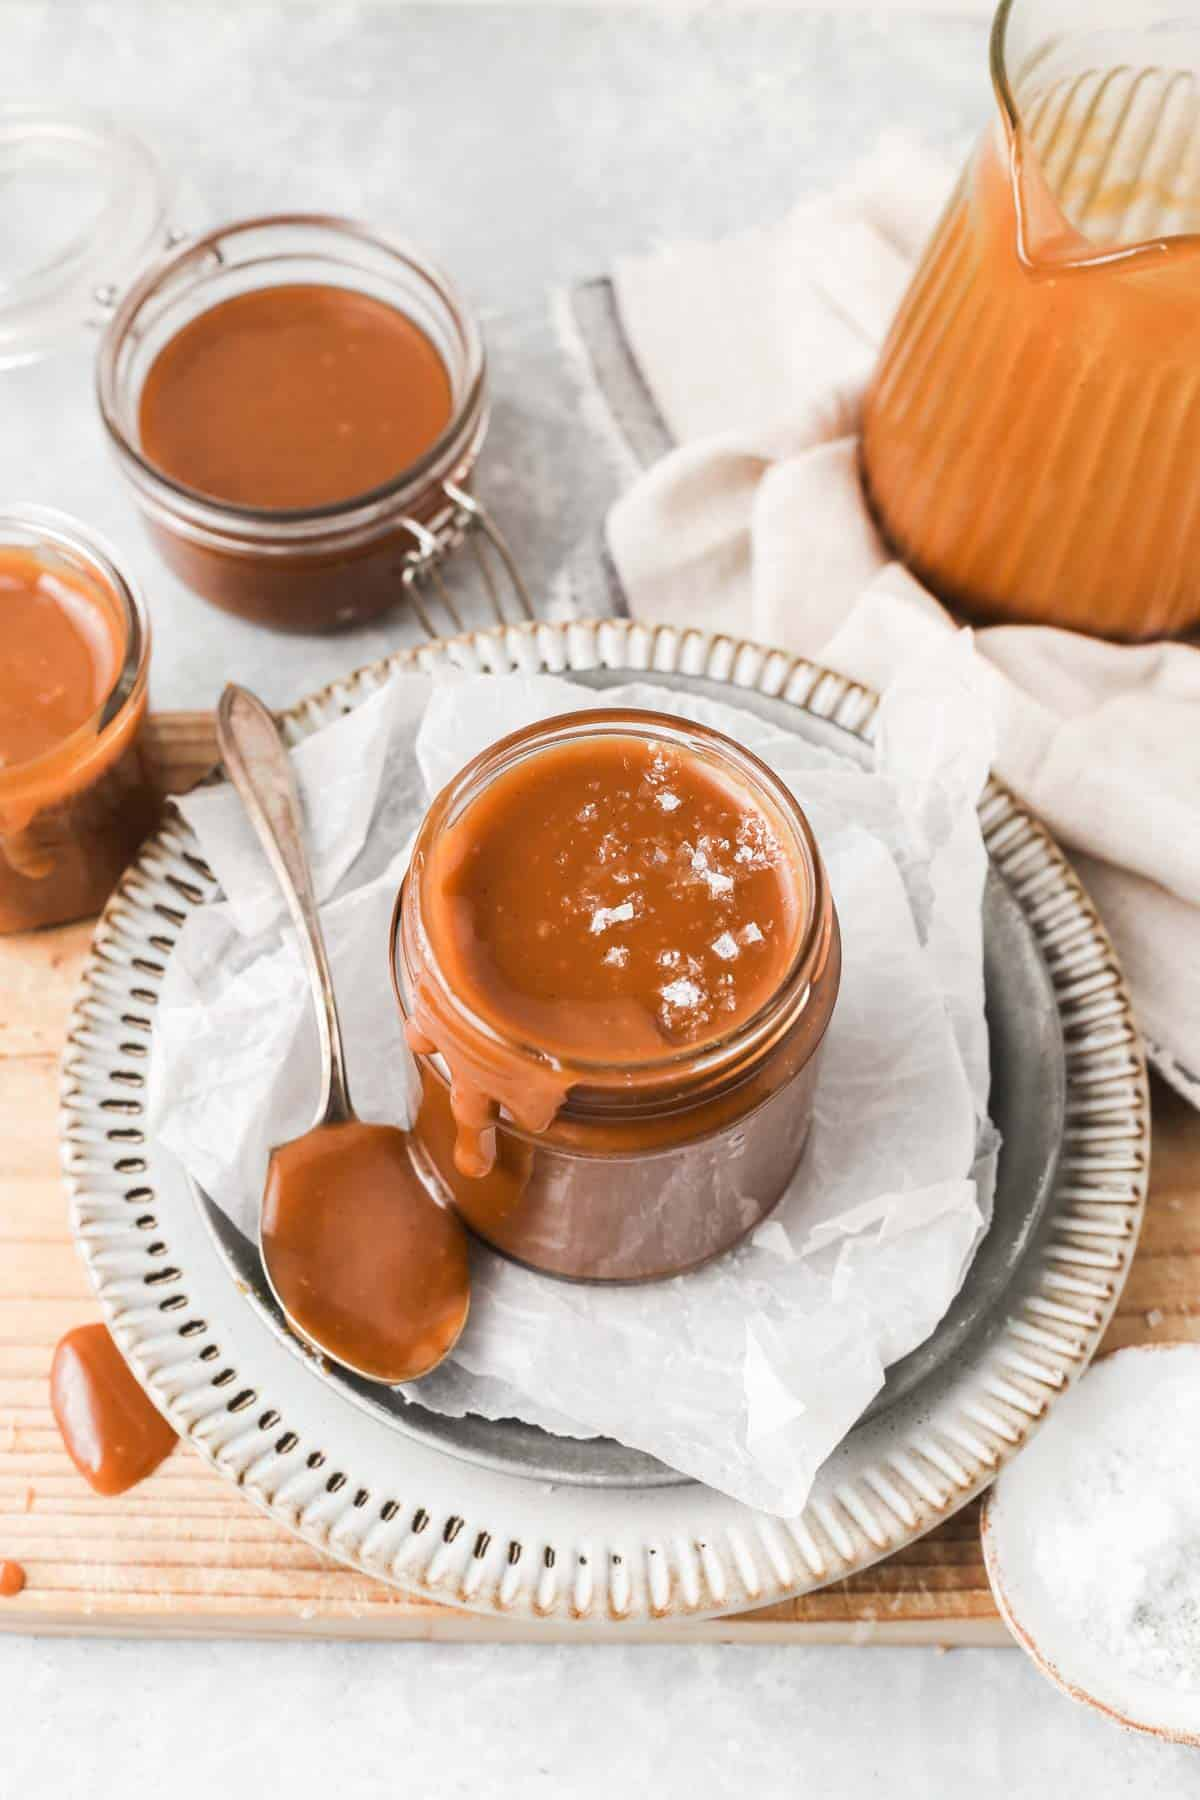 Jar filled with caramel sauce and sprinkled with sea salt flakes